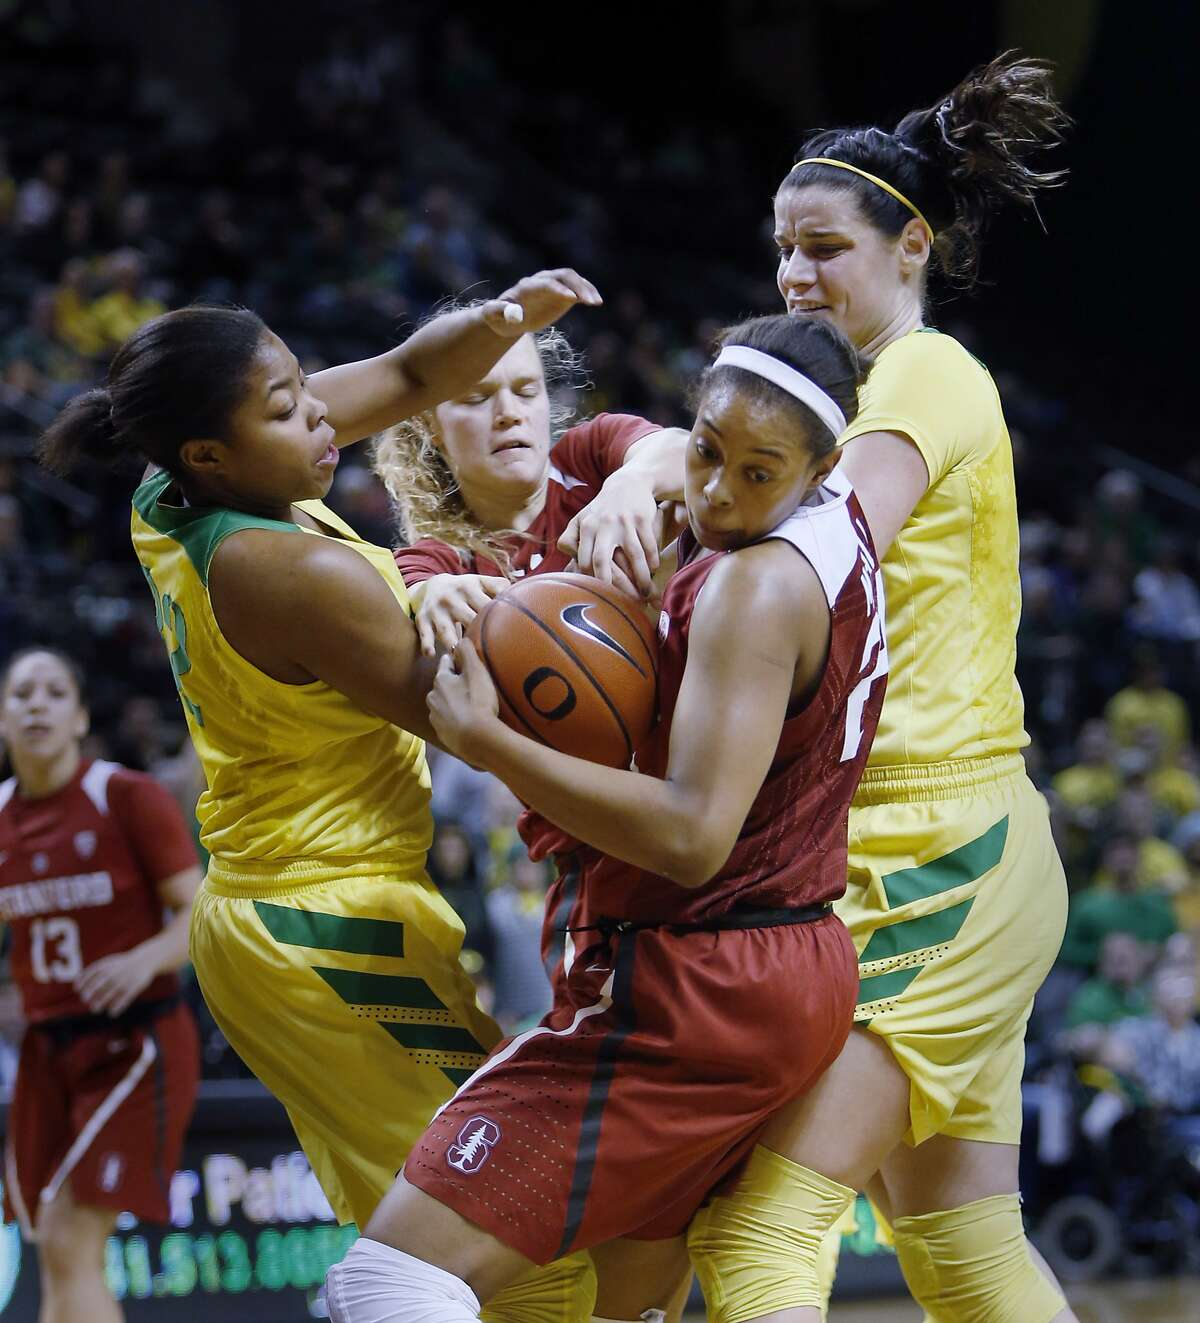 Oregon's Oti Gildon and Jacinta Vandenberg battle with Stanford's Erica McCall and Brittany McPhee for control of the ball during an NCAA college basketball game at Matthew Knight Arena in Eugene, Ore., Sunday Feb. 26, 2017. Stanford won the game 65-59. (Andy Nelson/The Register-Guard via AP)